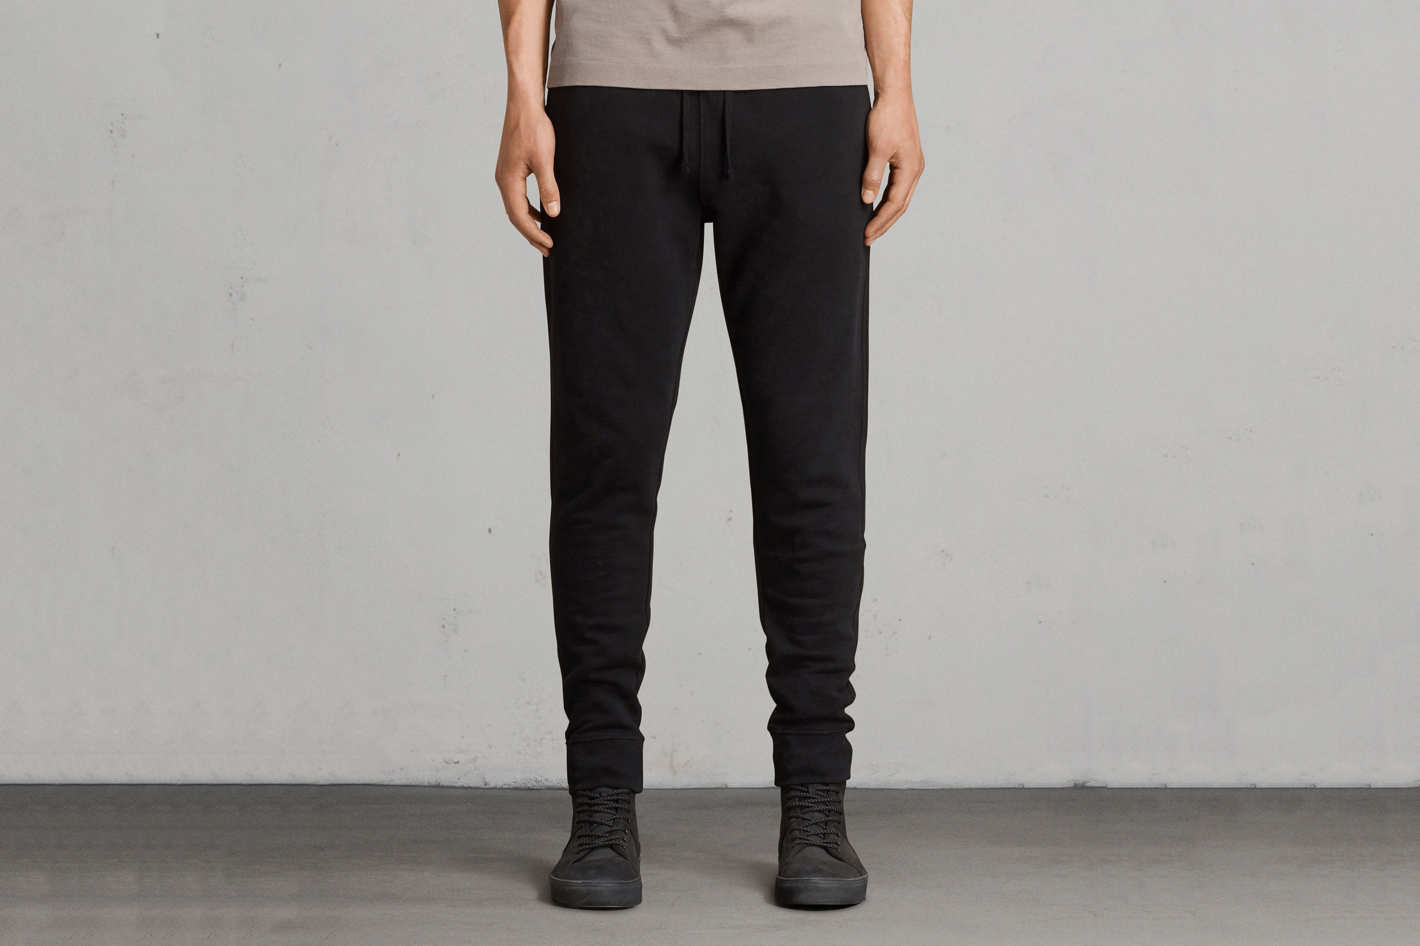 All Saints Raven Sweatpant